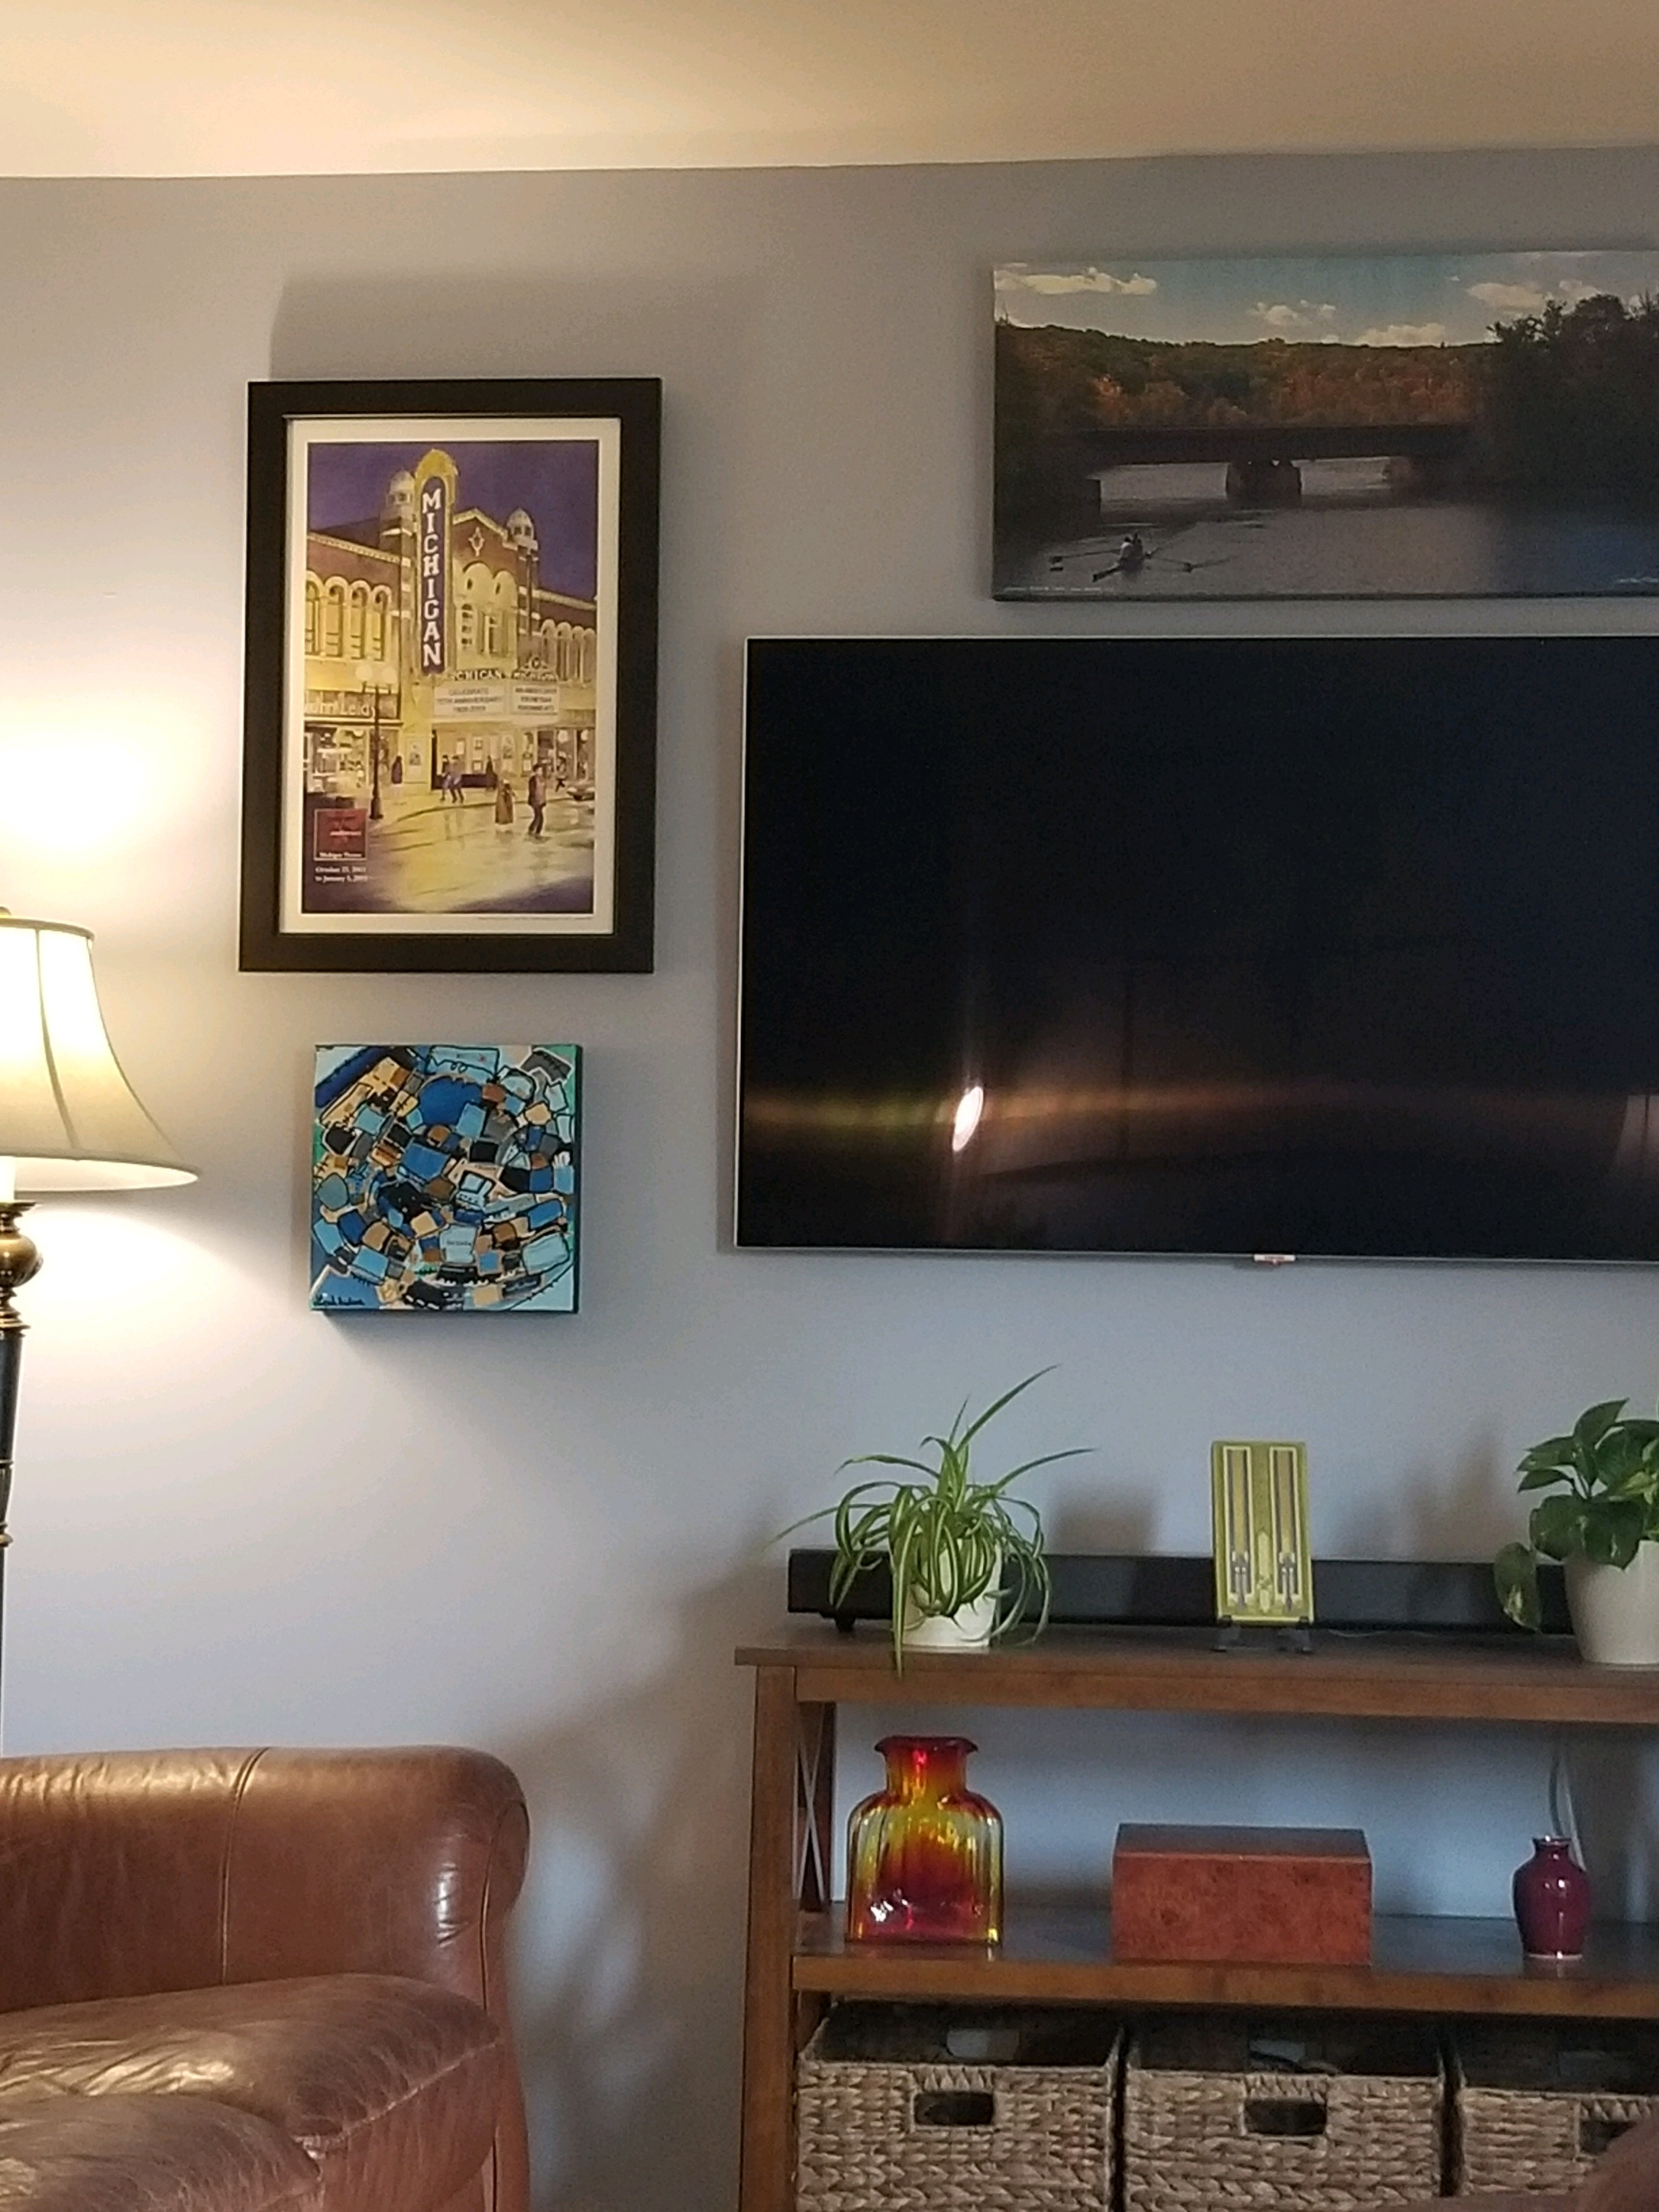 Piazza in its new home in Ann Arbor, Michigan